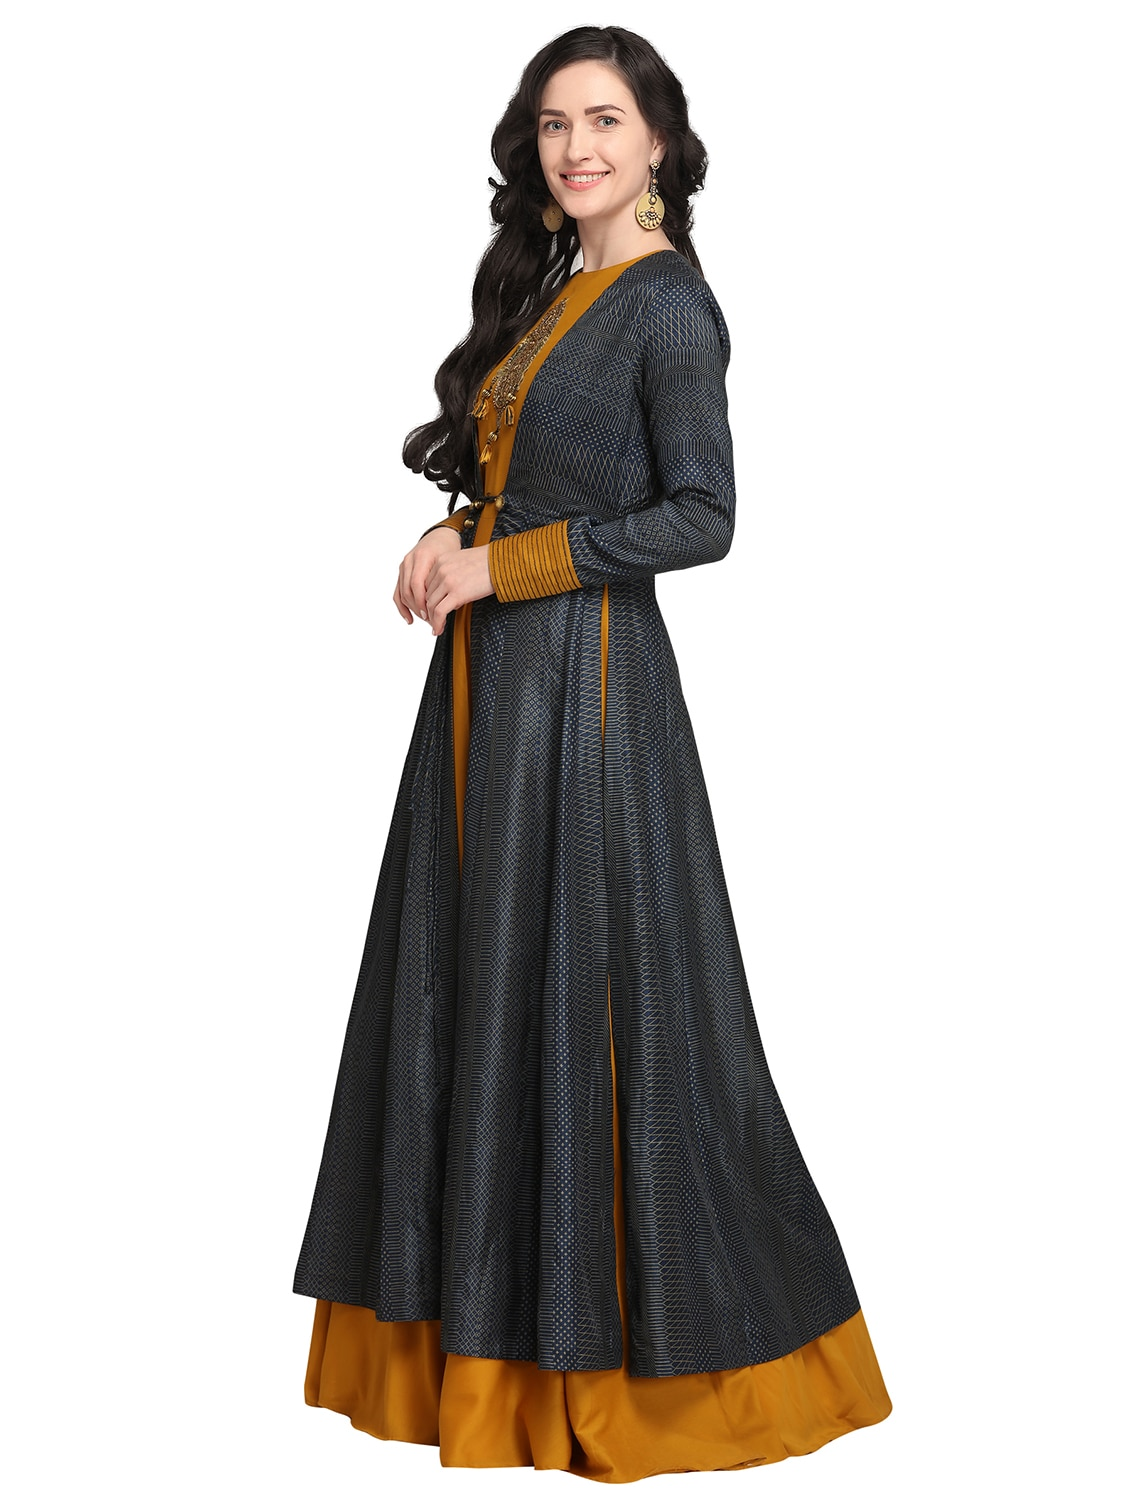 0e8c7173466efe Buy Mustard Applique Flared Gown With Printed Jacket for Women from Stylee  Lifestyle for ₹3490 at 64% off | 2019 Limeroad.com